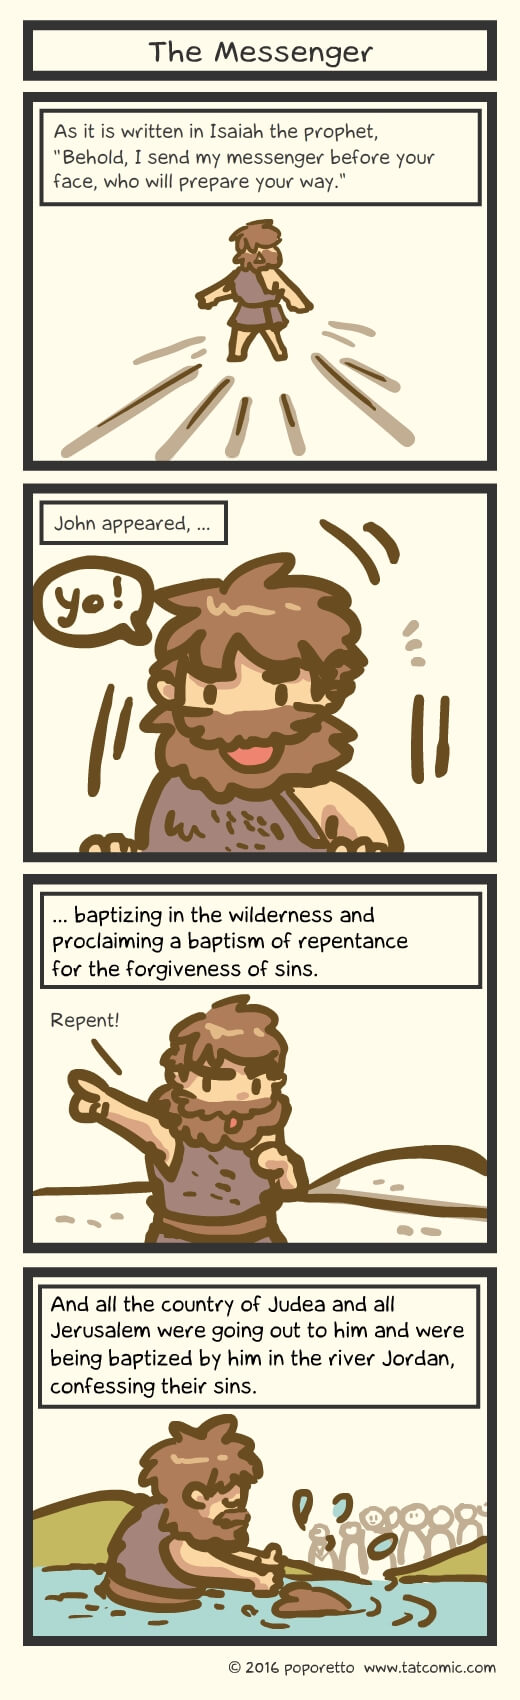 Christian Comic Strip the Gospel of Mark Book of Mark John the baptist proclaiming john the baptist